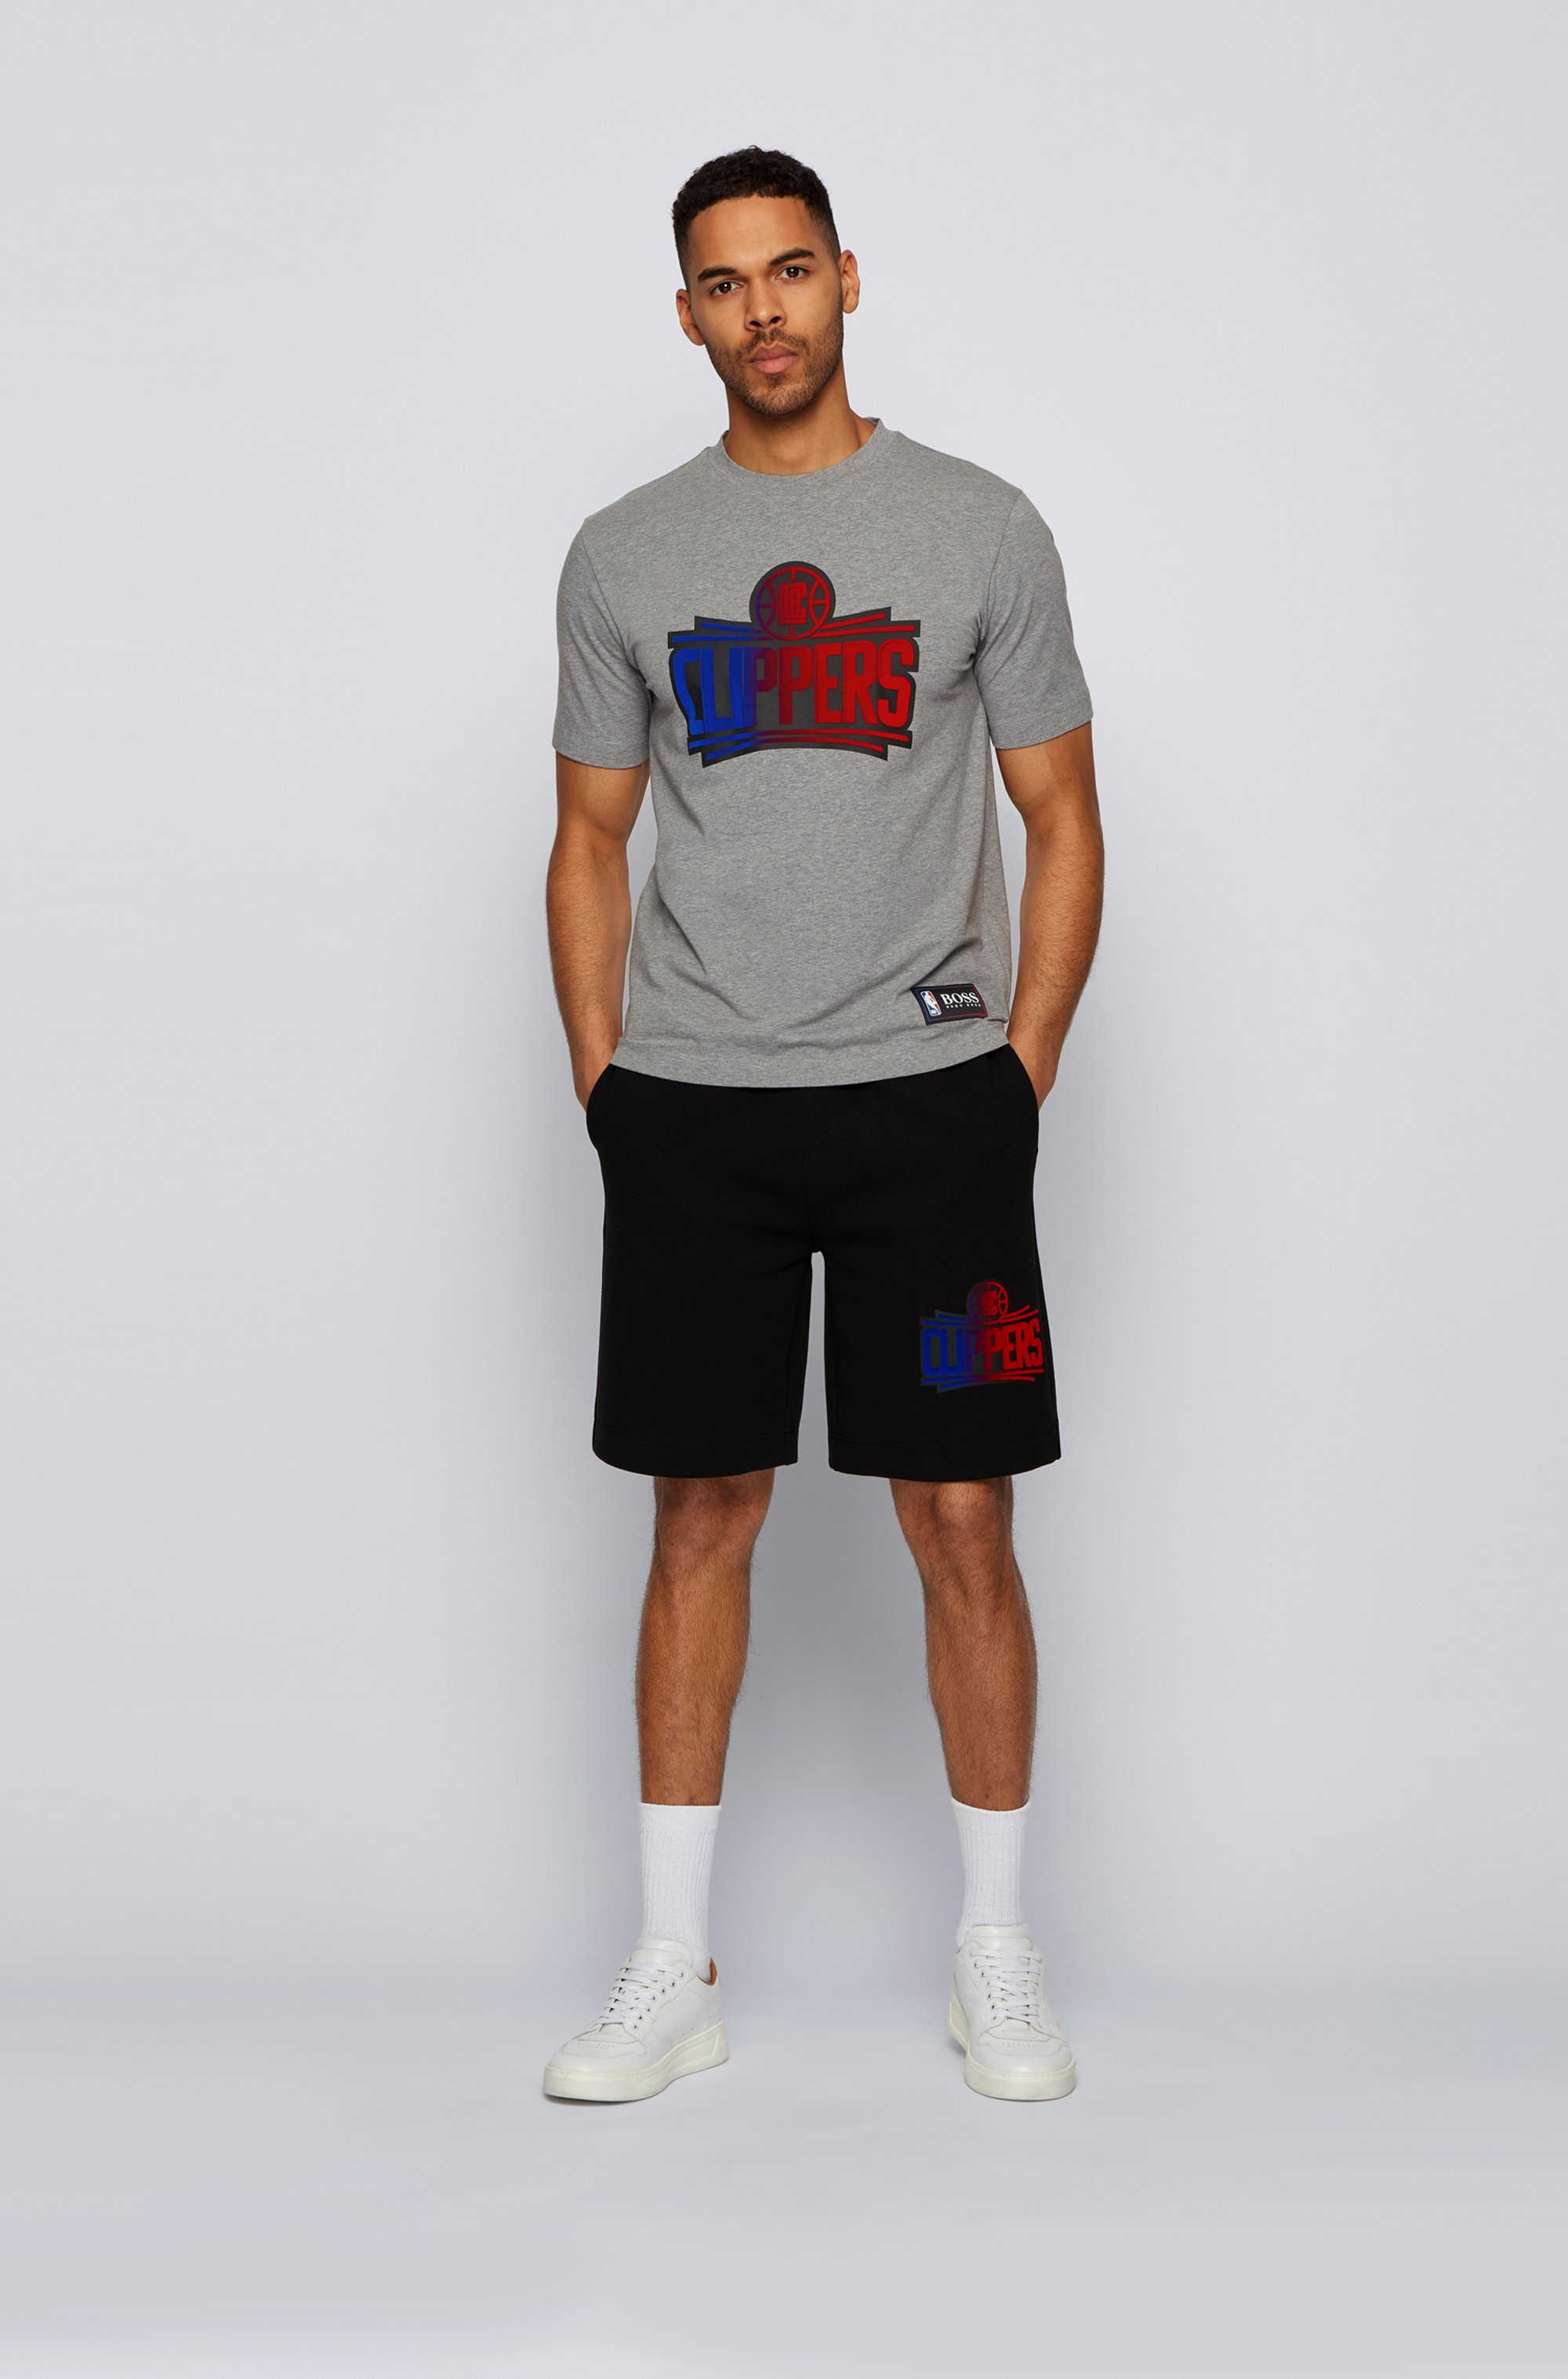 BOSS x NBA T-shirt with team logo